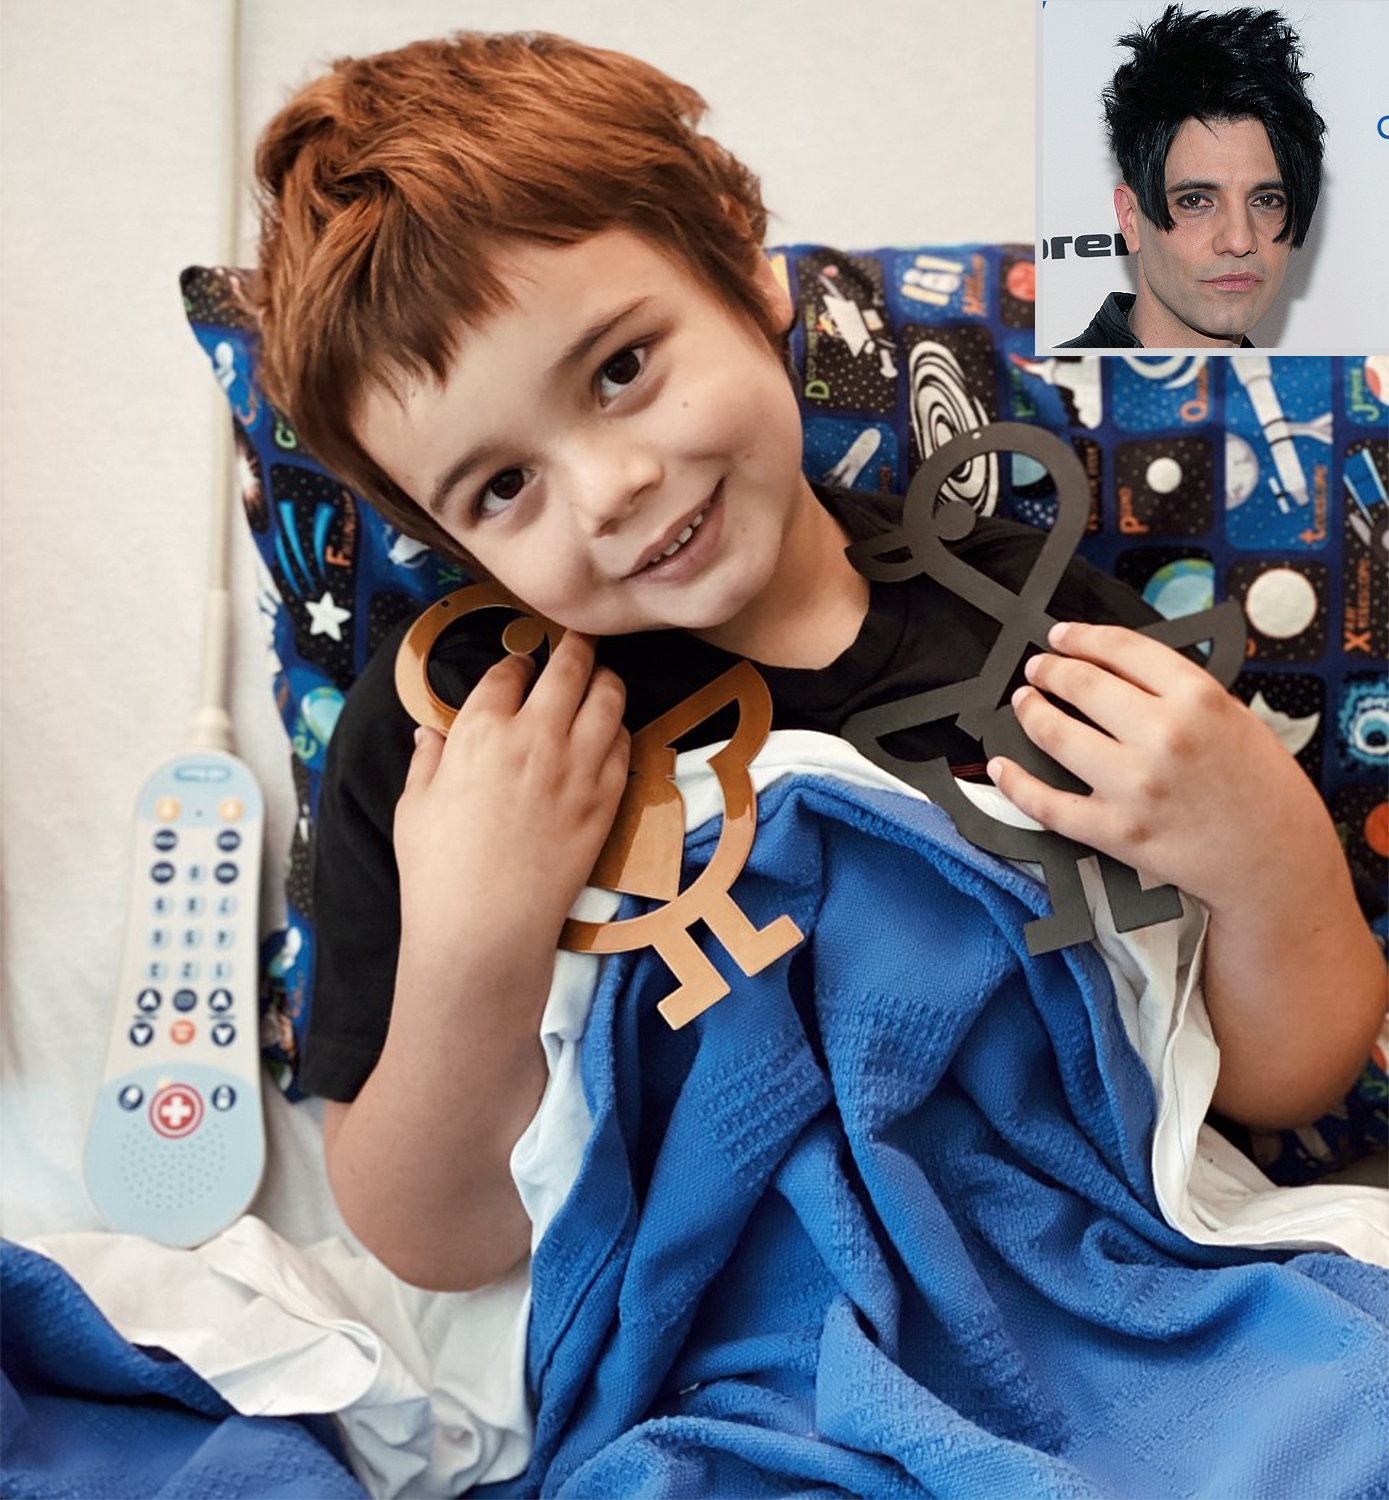 Criss Angel And Family Support Charity Amid Son S Cancer Battle People Com She was born in 1991 and is 24 years younger than her famous husband. criss angel and family support charity